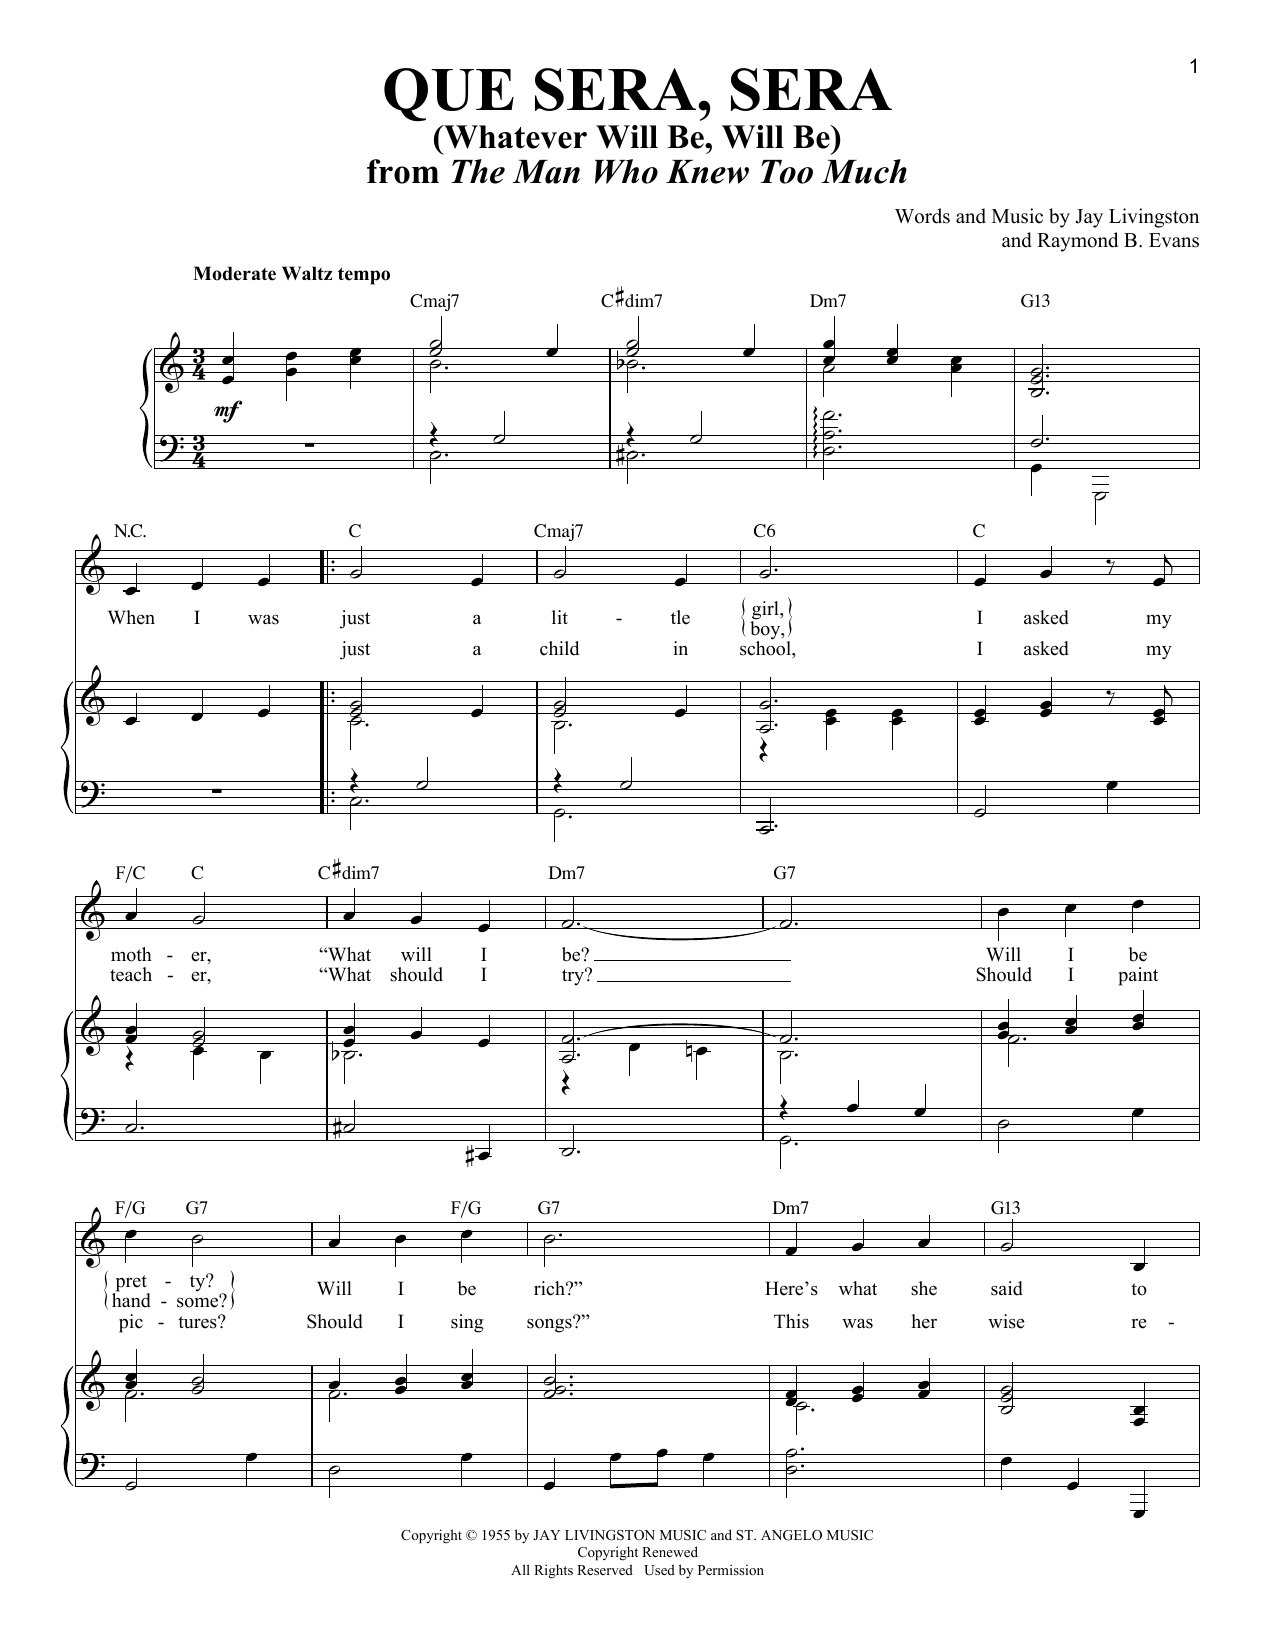 Que Sera, Sera (Whatever Will Be, Will Be) : Sheet Music Direct